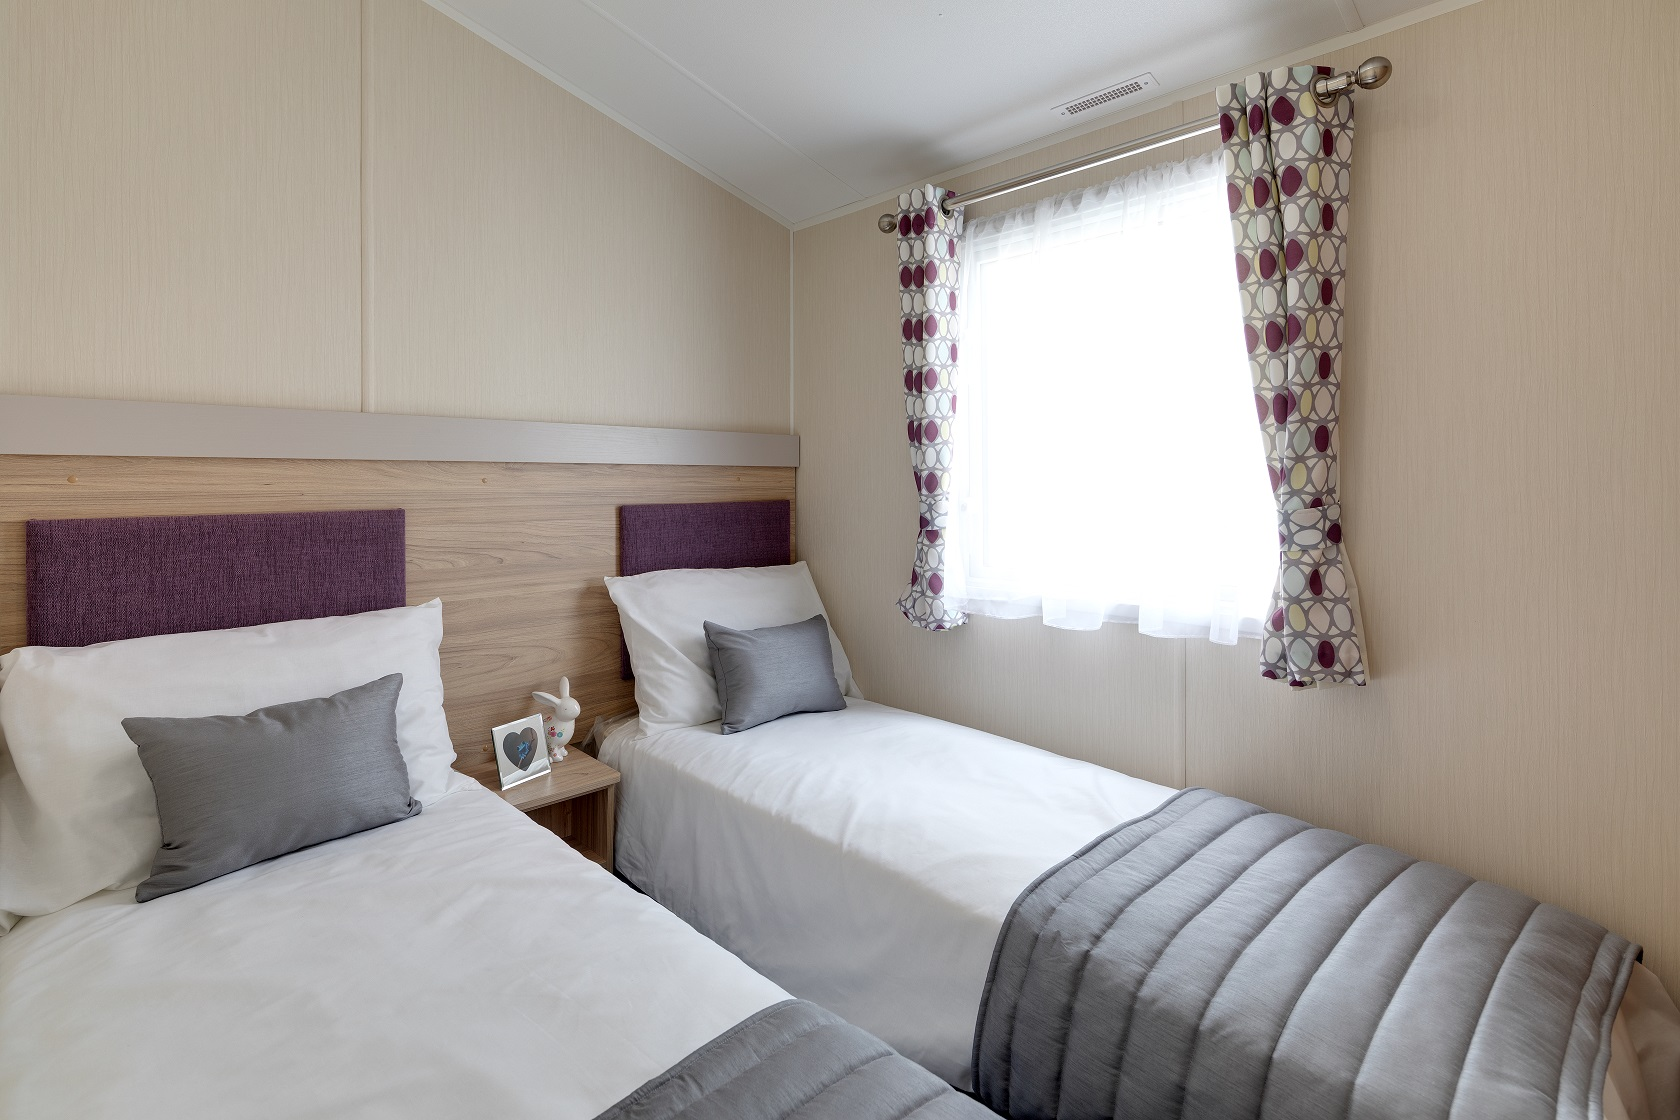 Willerby Linwood: New Static Caravans and Holiday Homes for Sale, Langley Moor, Durham Image 4